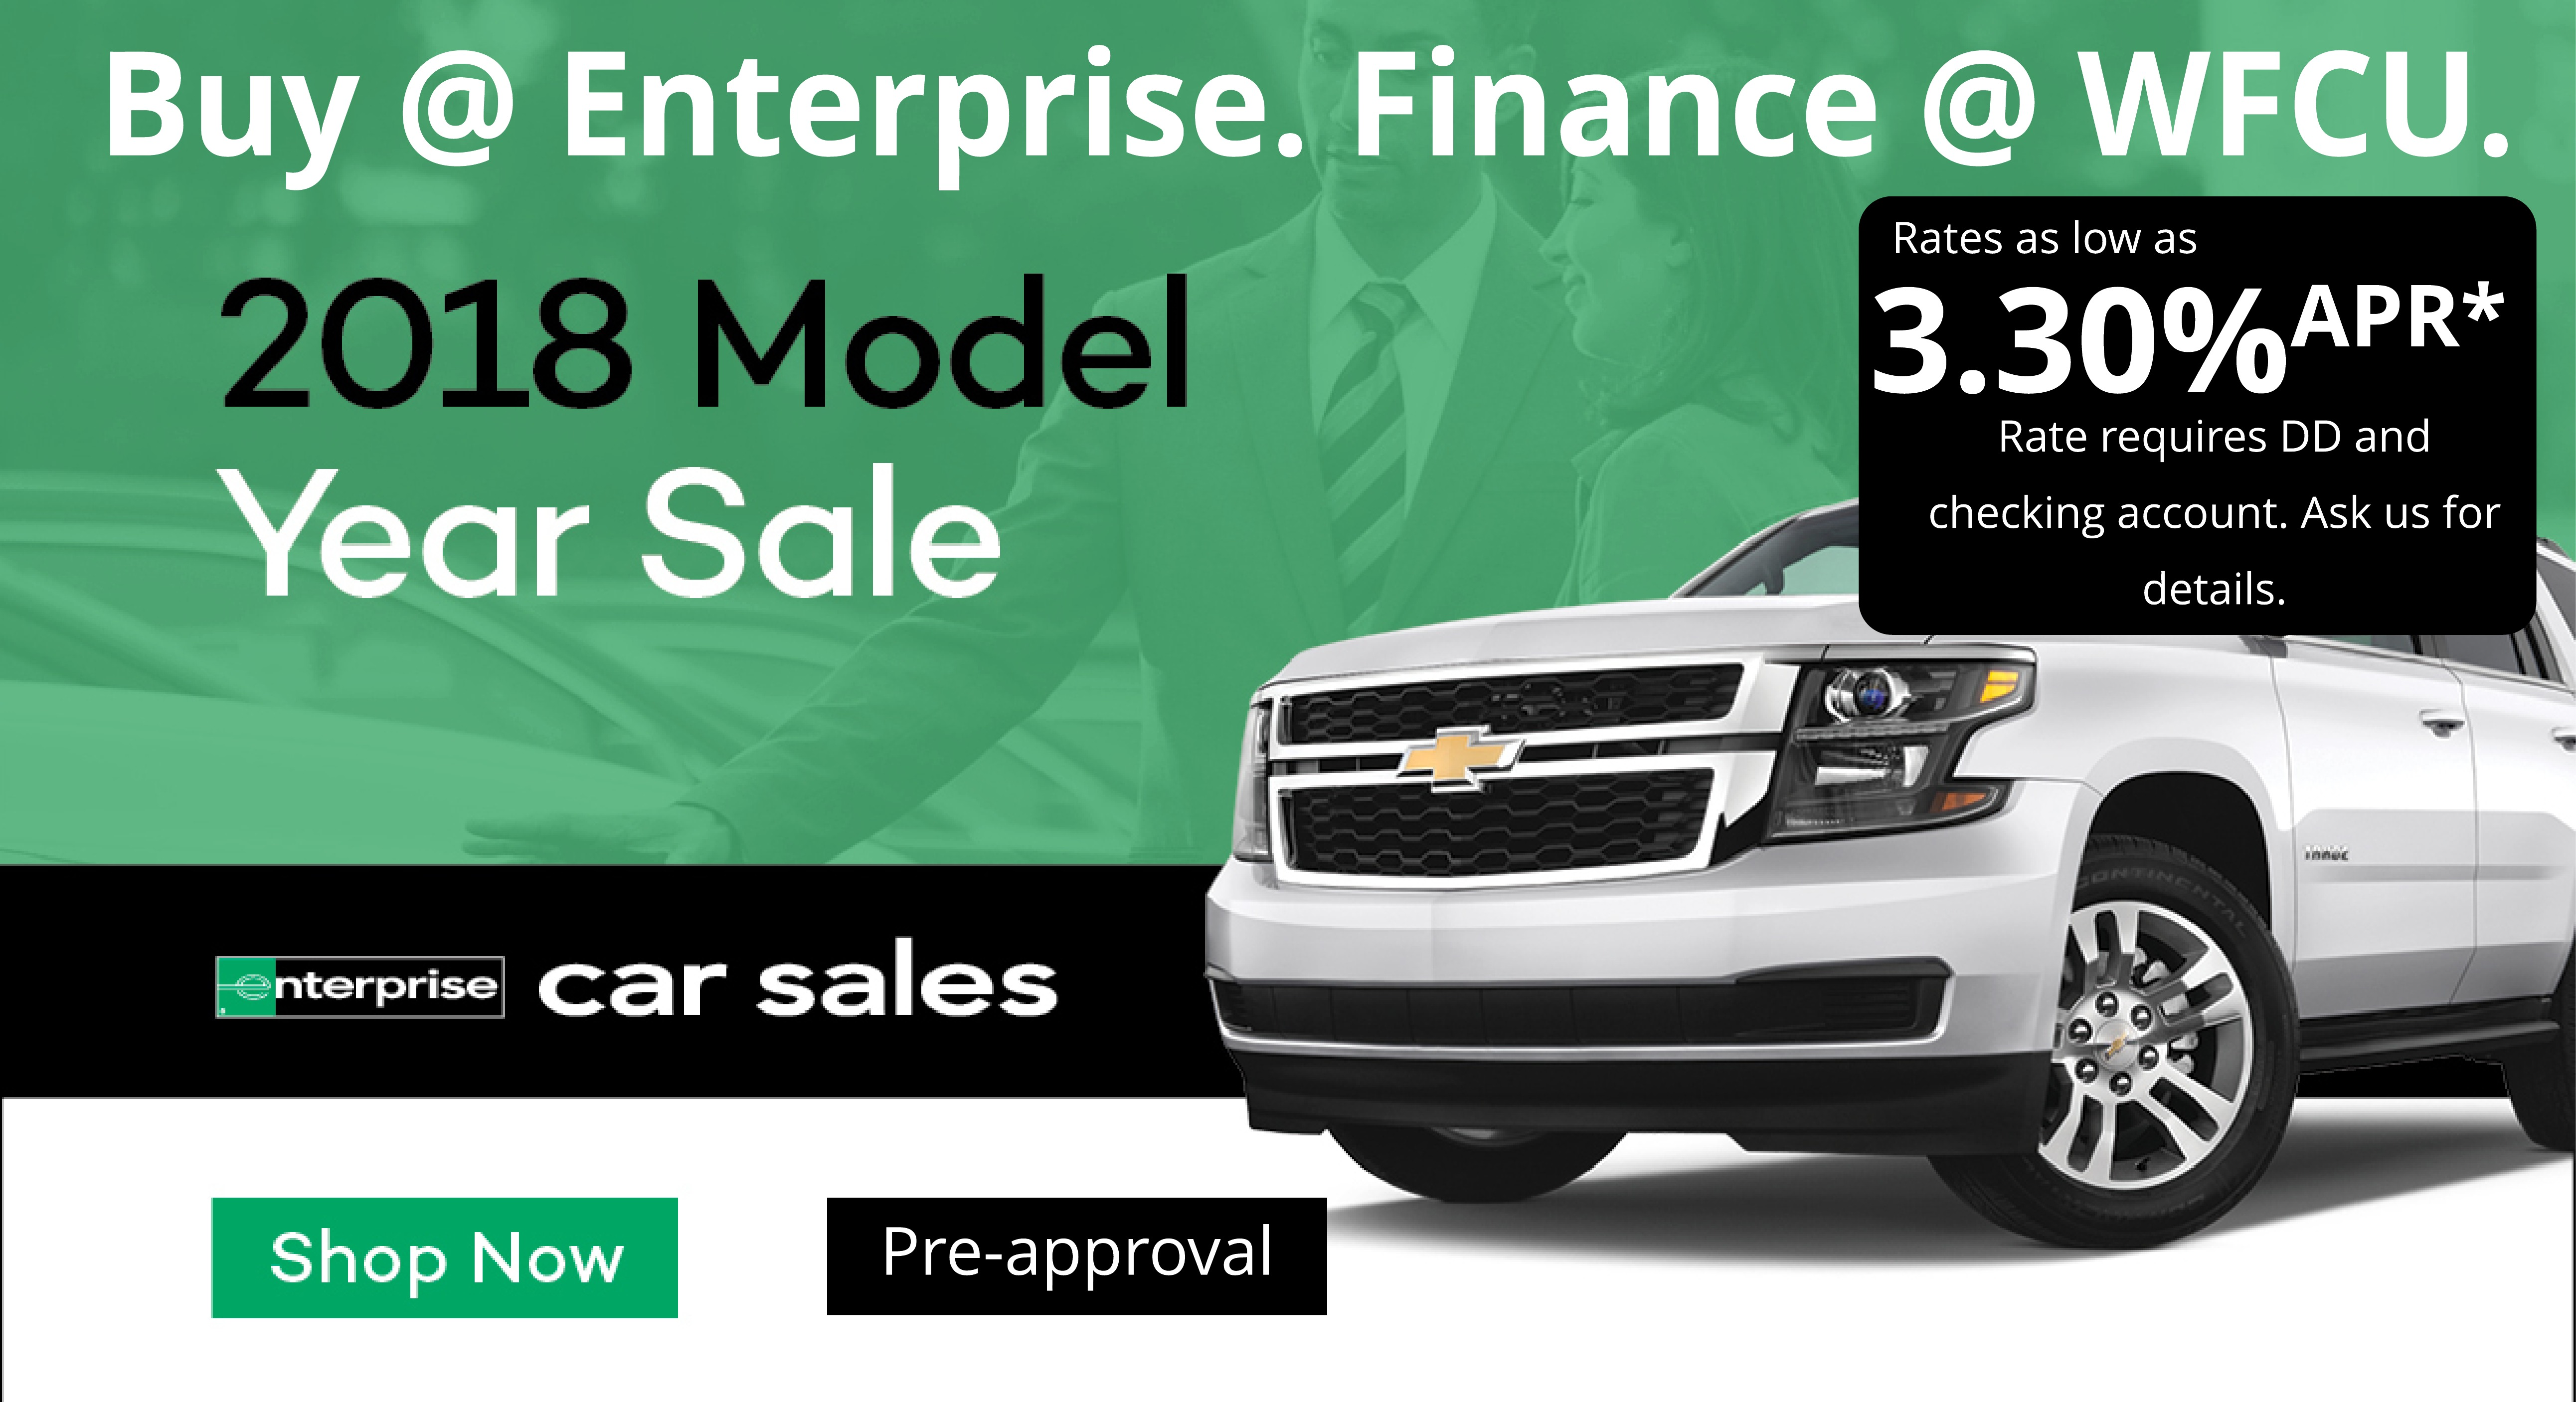 Enterprise Ad with truck with headline that says